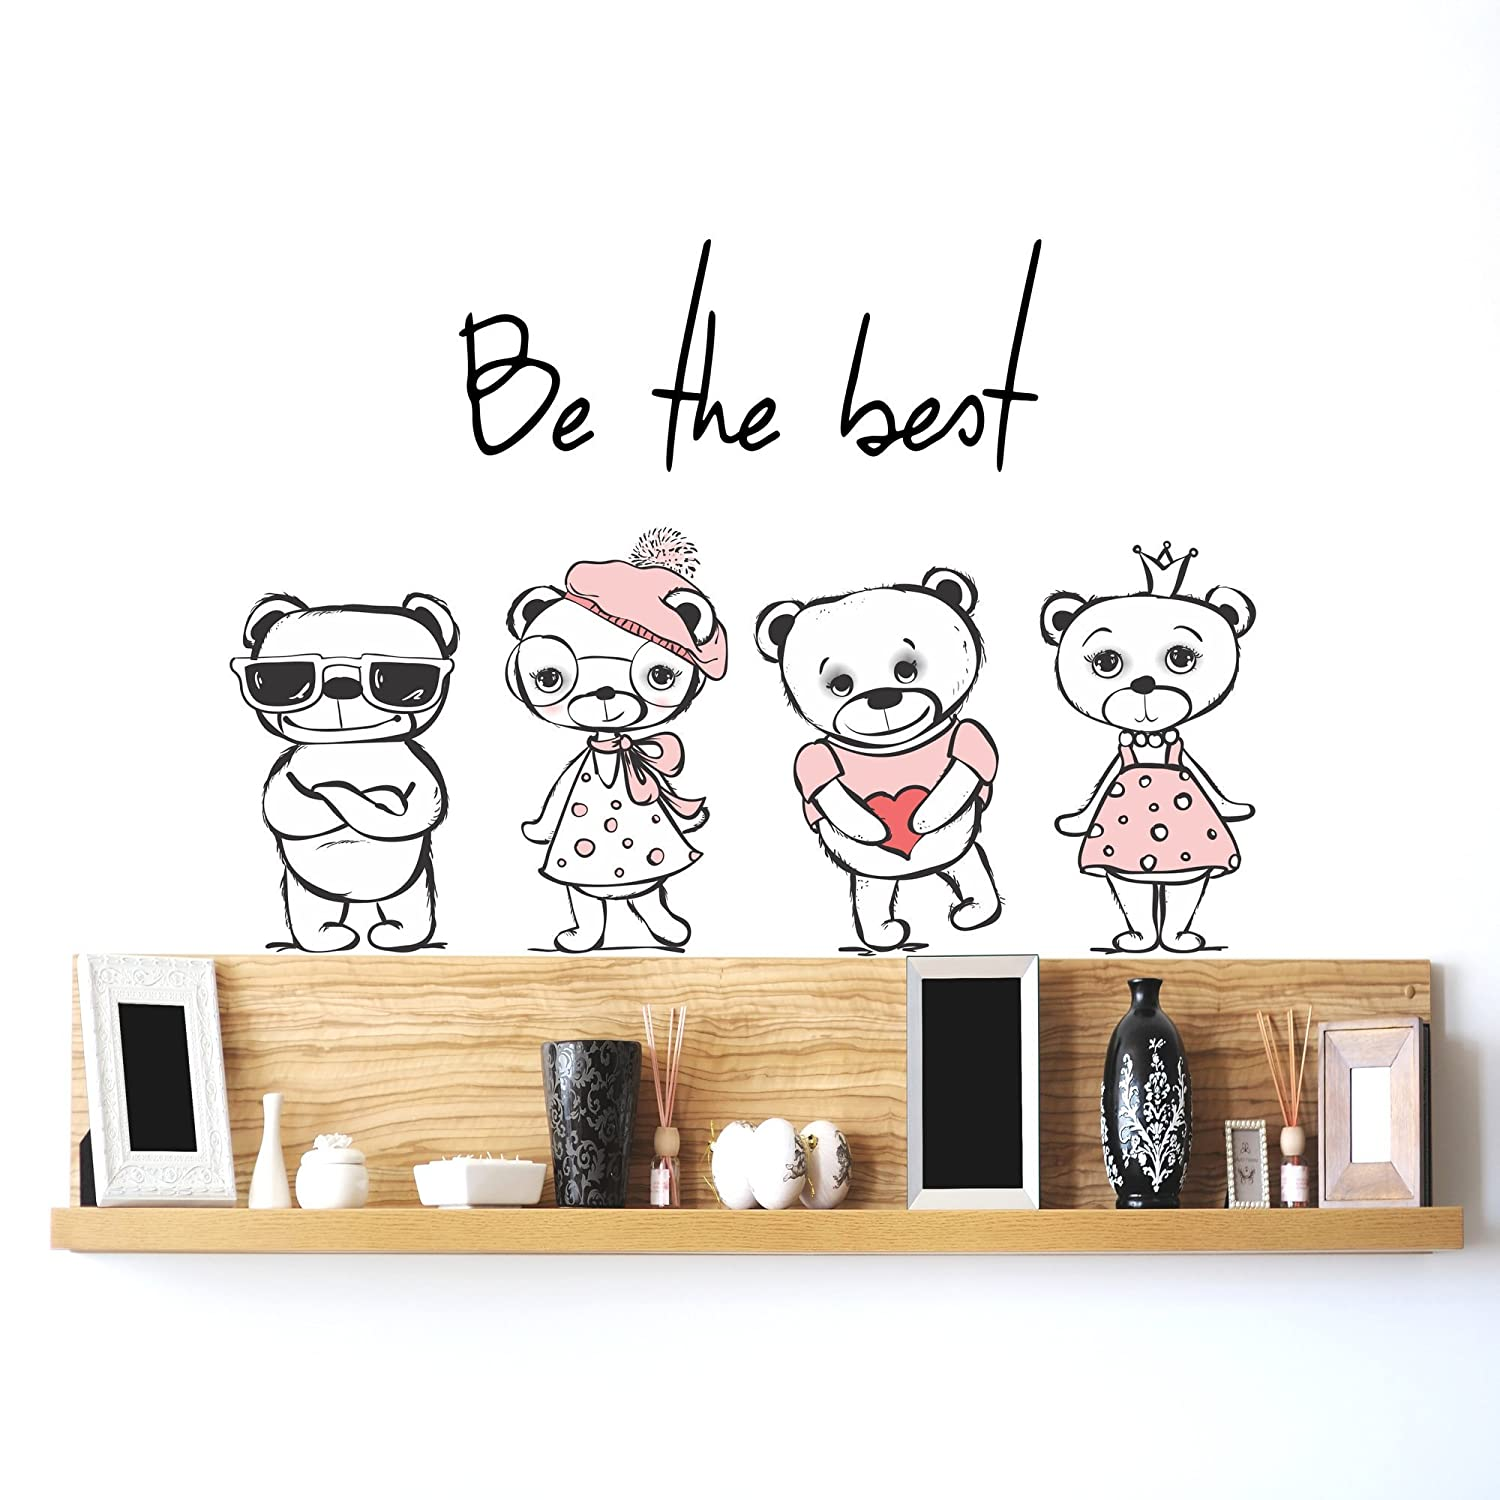 Wall Stickers Upto 90% Off Starting from Rs.51